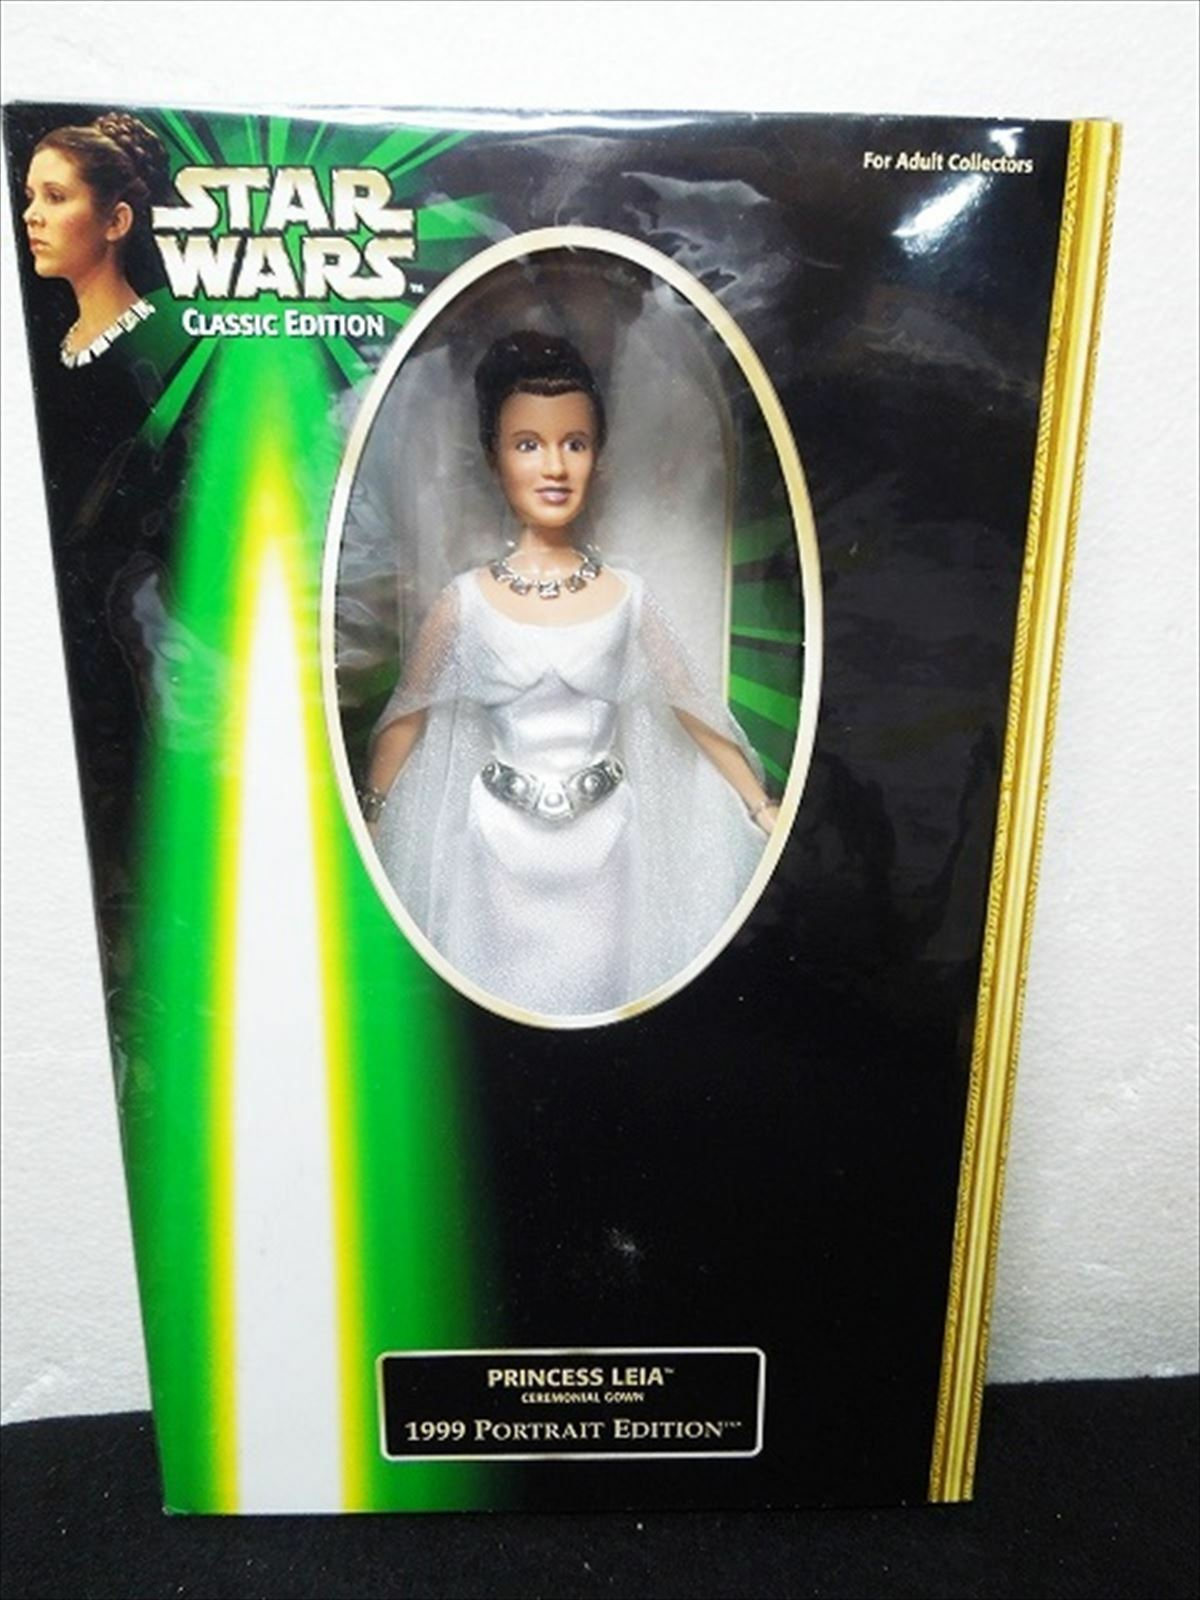 STARWARS CLASSIC EDITION Princess Leia 1999 Portrait Edition from JAPAN F/S